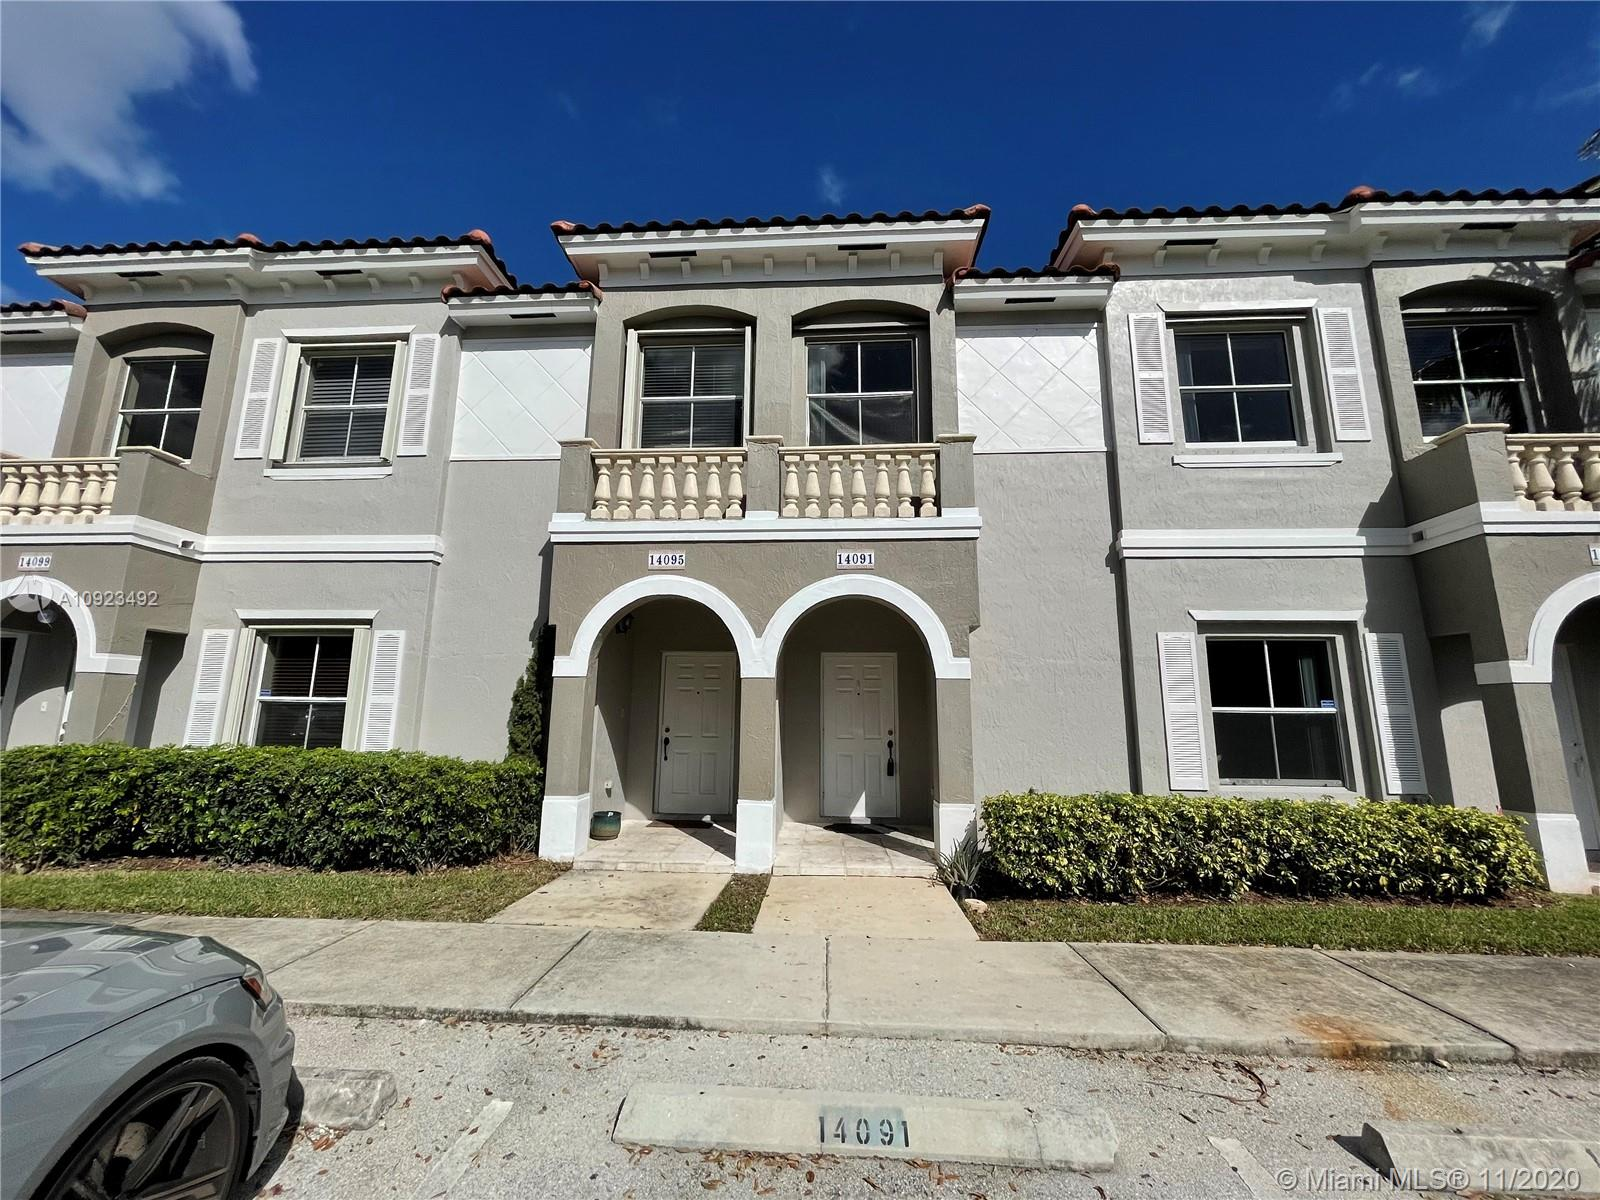 14091 SW 49th Ct #7 For Sale A10923492, FL